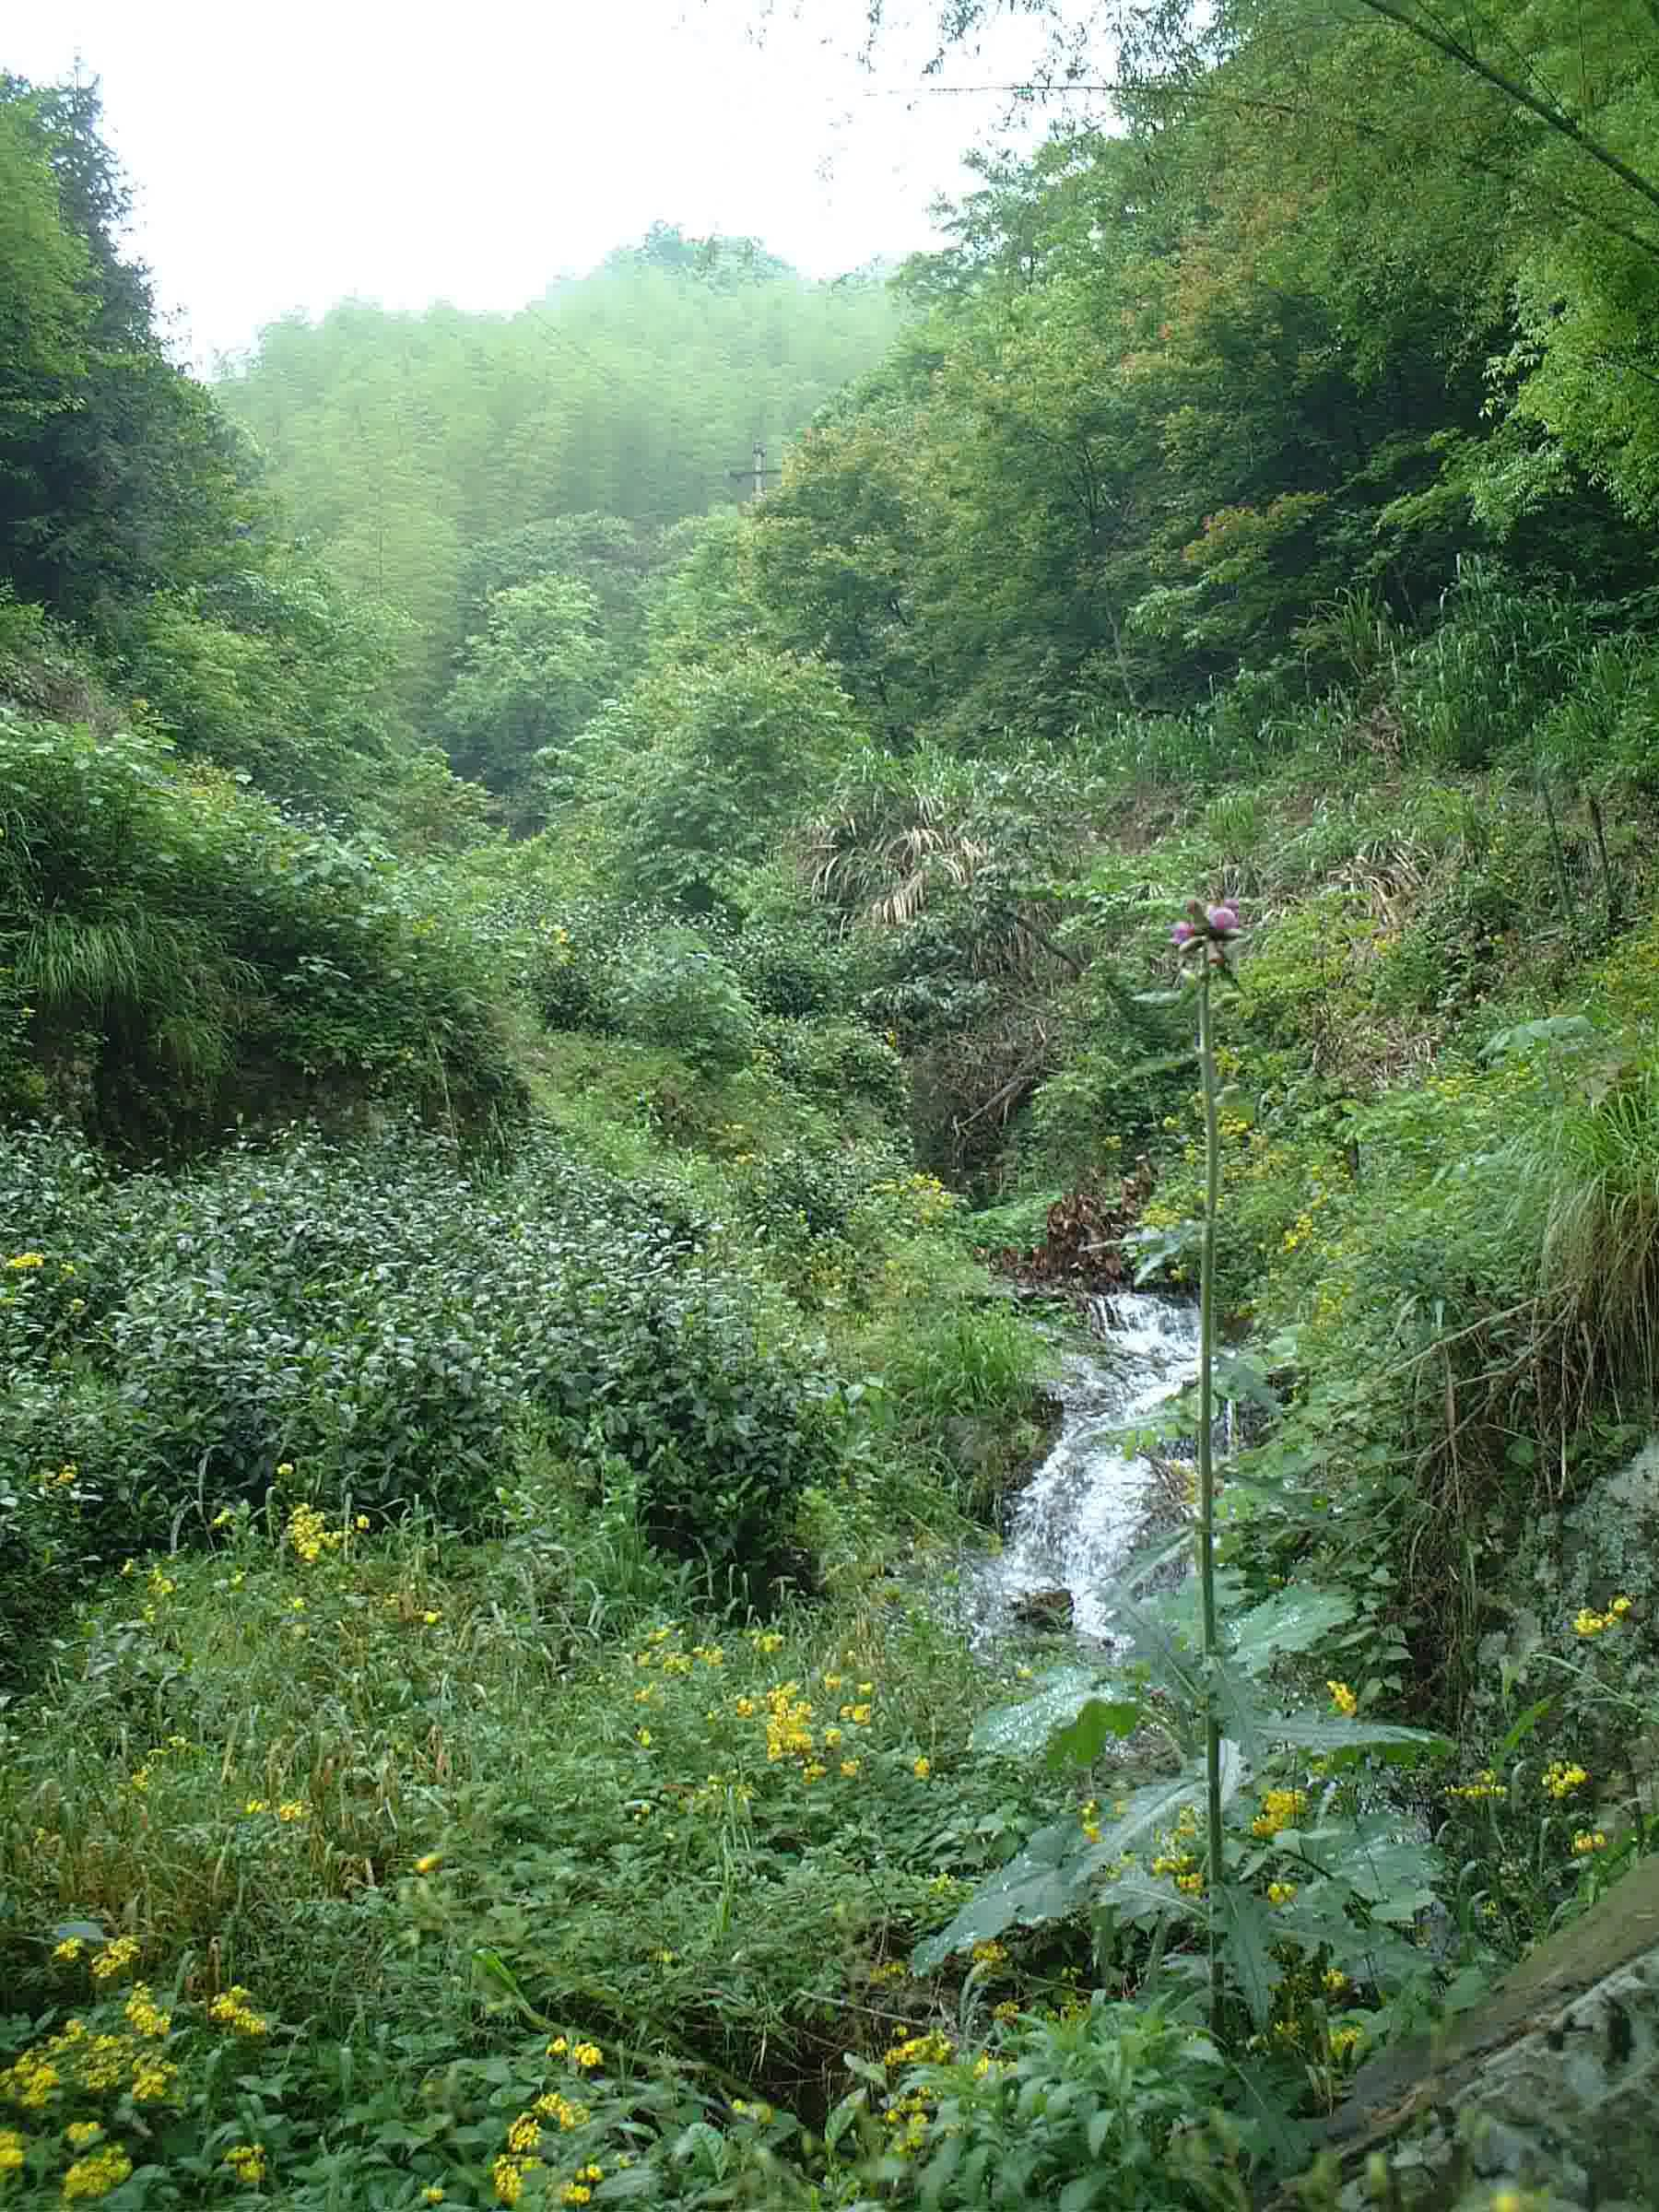 A small stream running through a lush green mountain valley full of tea bushes, trees, and wildflowers.